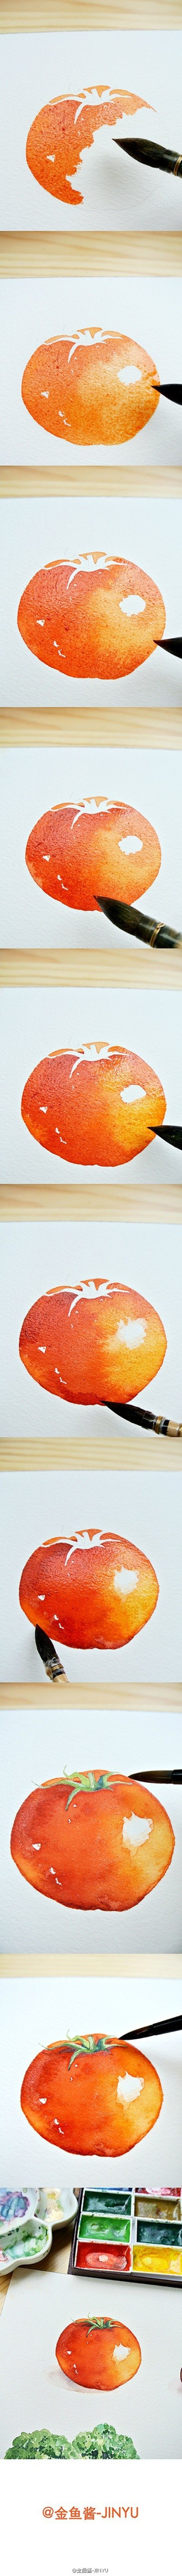 [Tutorial] tomato tomato ingredients painting sketches, book page within the four techniques, learning to share, hope is good enough.  (With a long step Vice FIG Wait Loading ......)